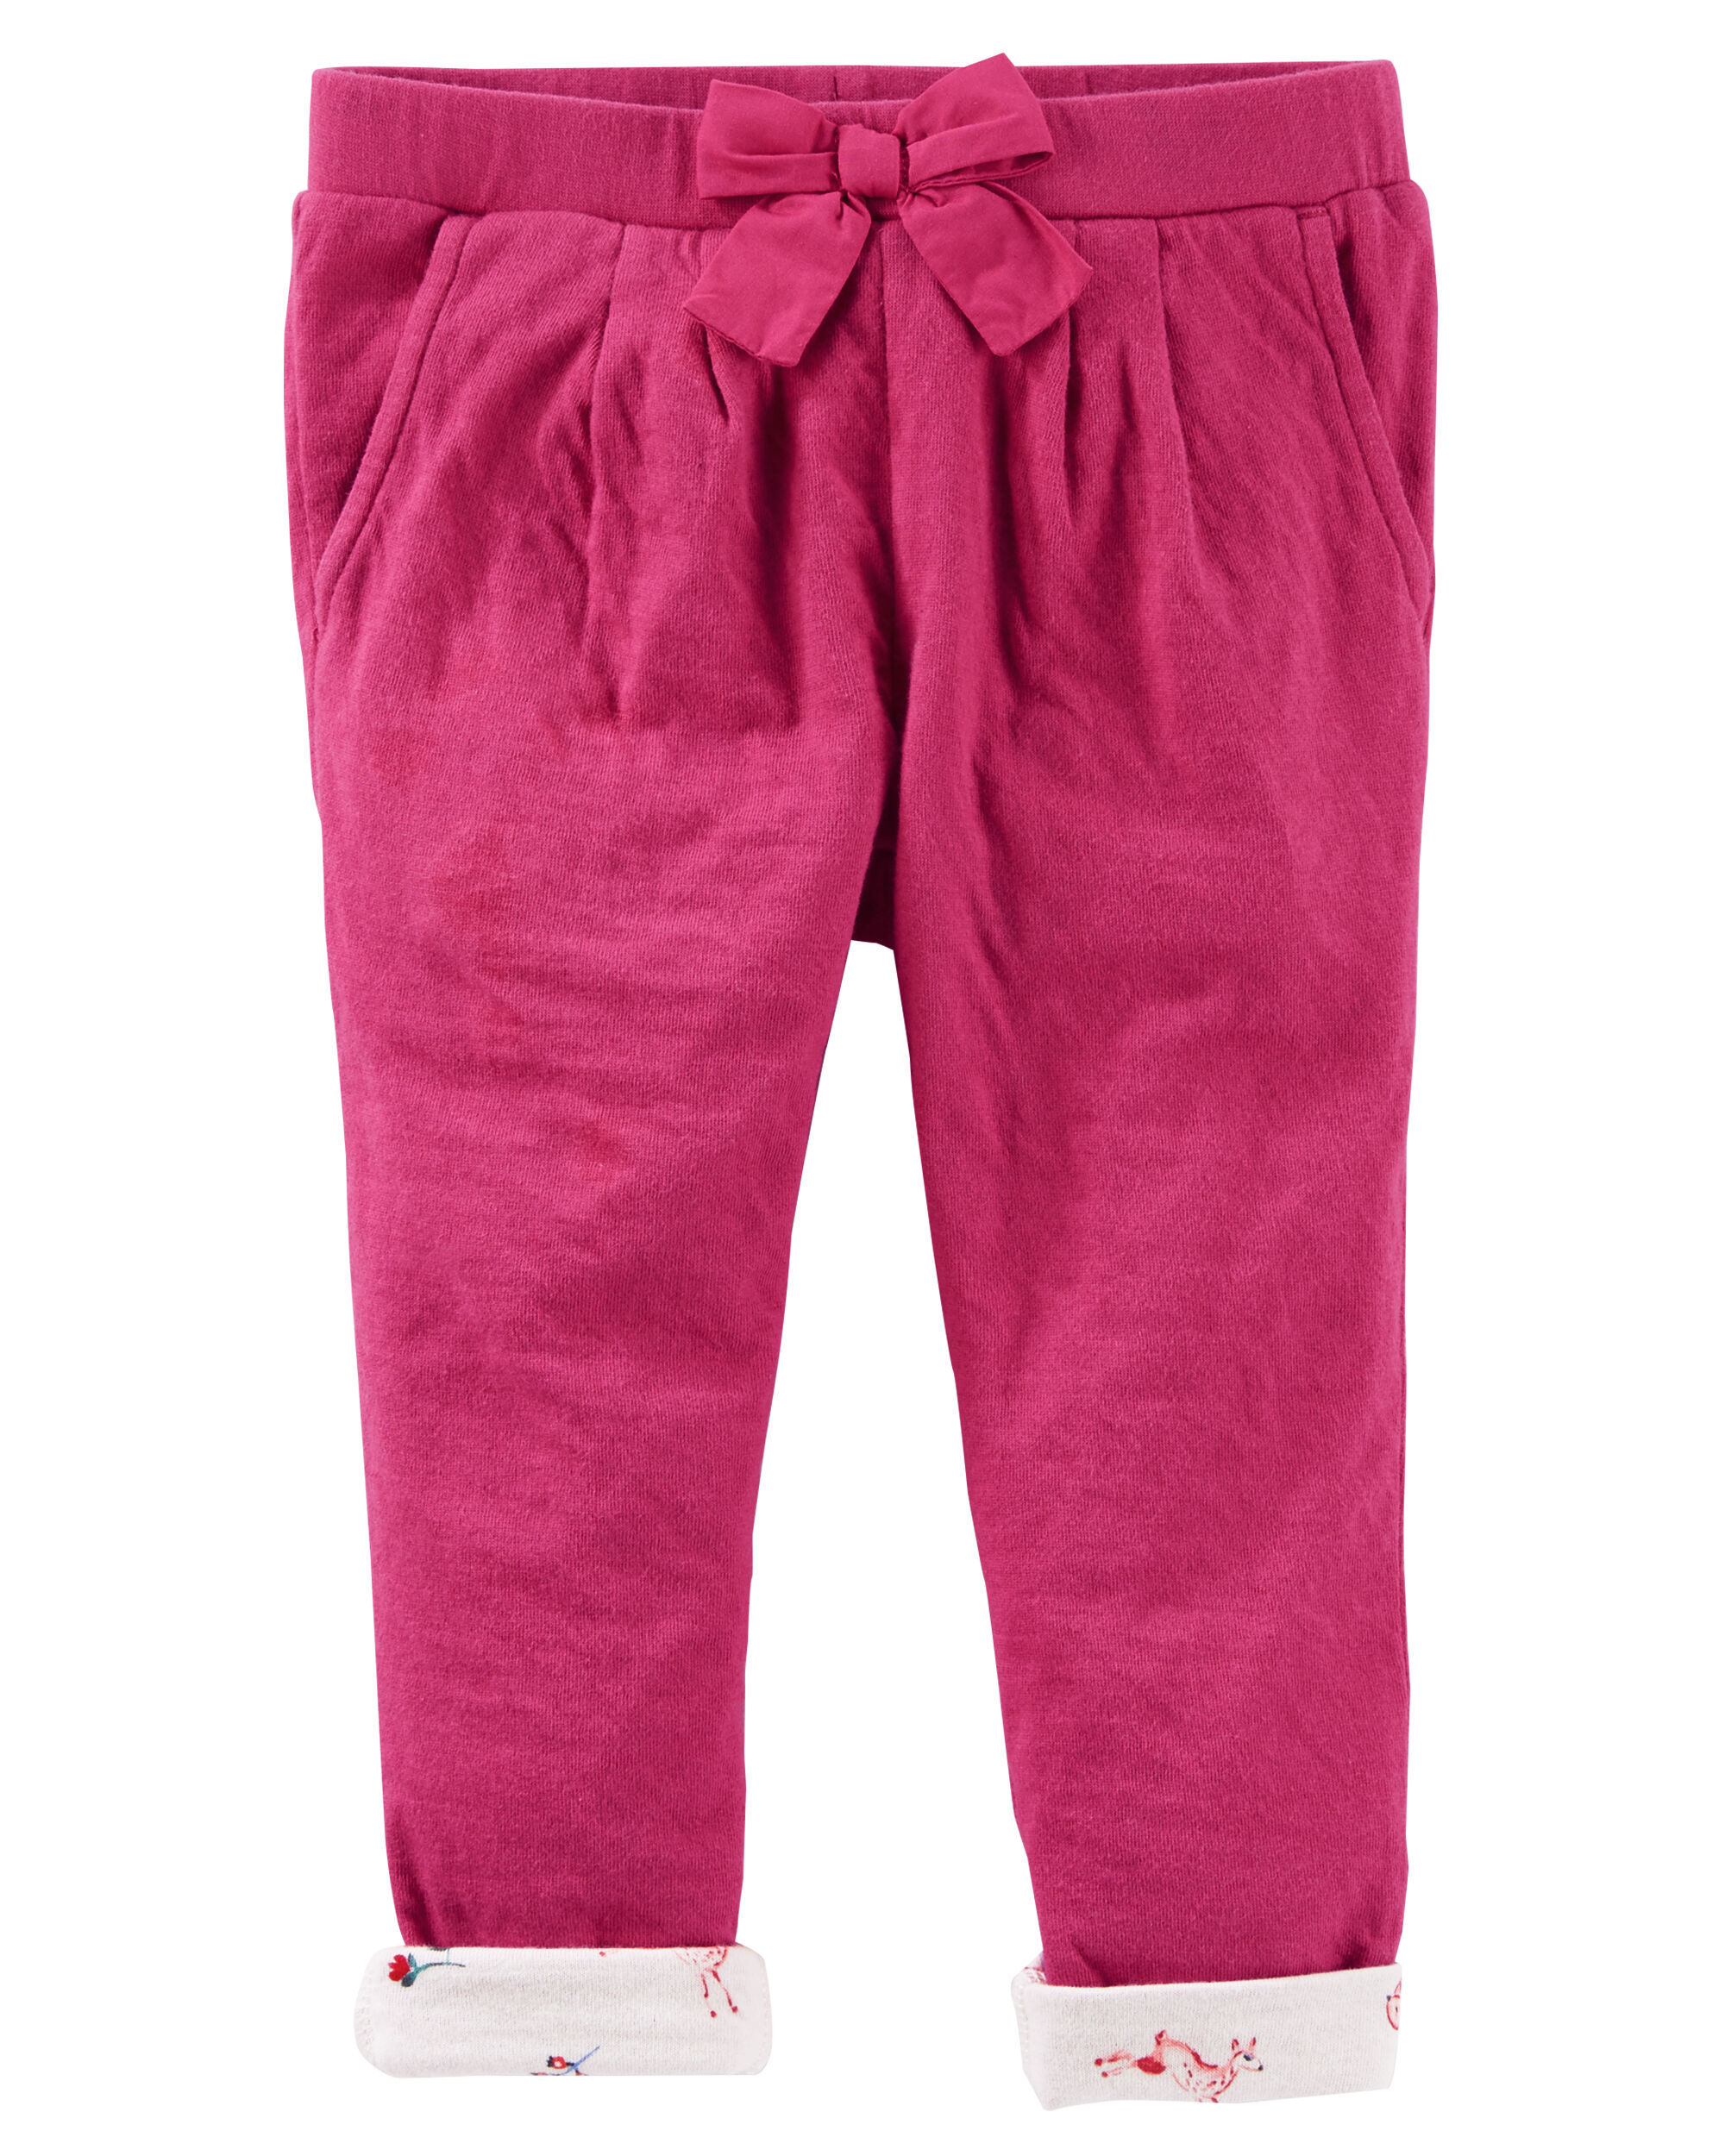 Double-Knit Pull-On Pants